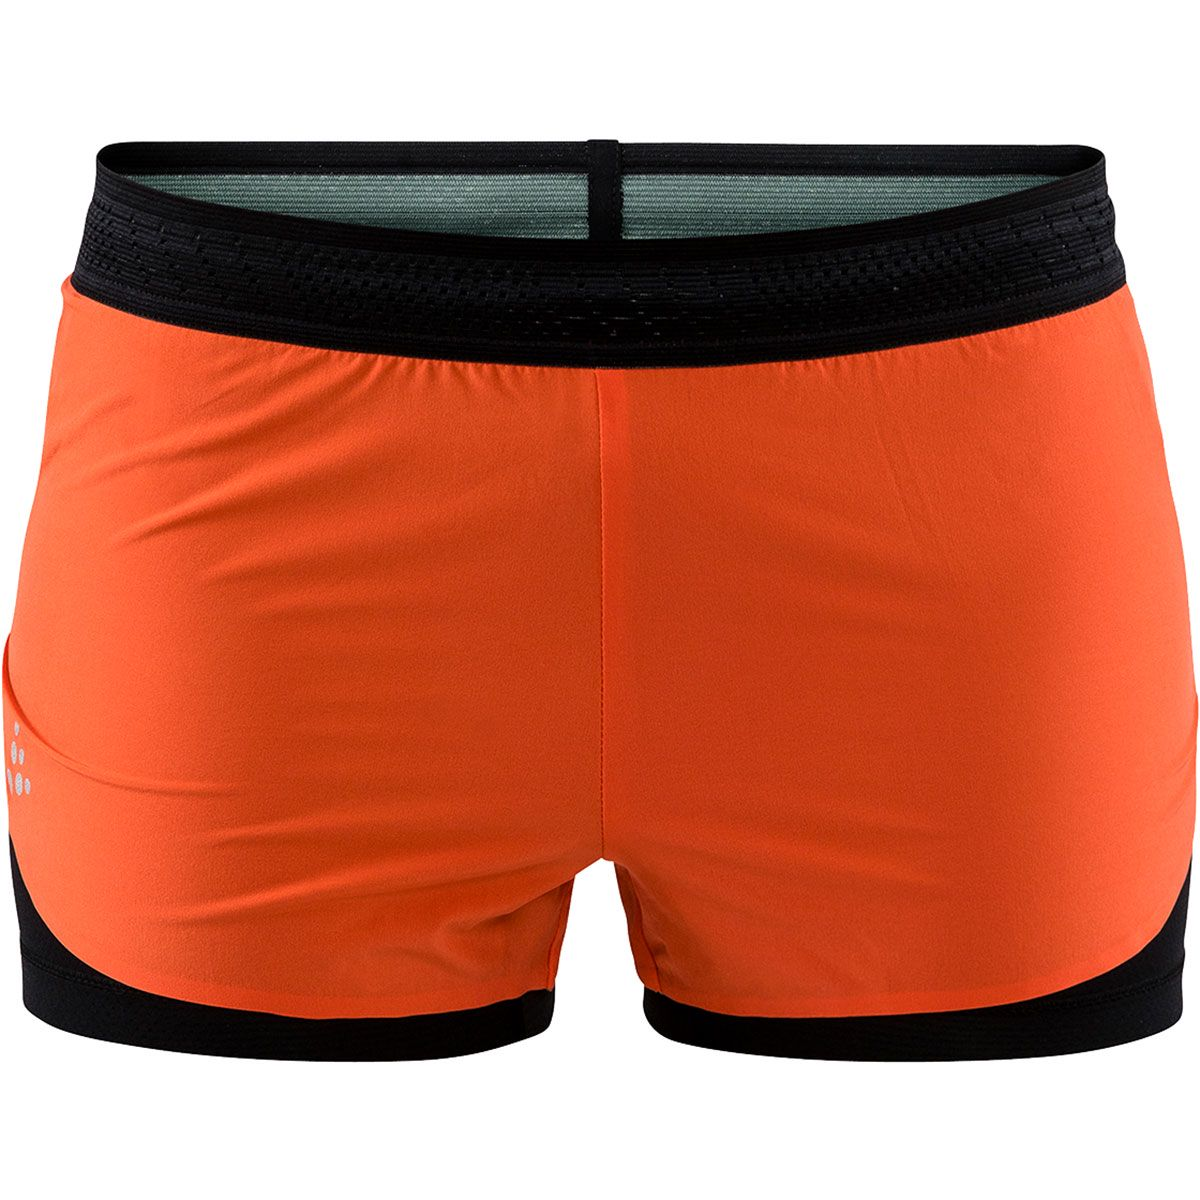 Craft Damen Nanoweight Shorts (Größe M, Orange) | Laufhosen > Damen